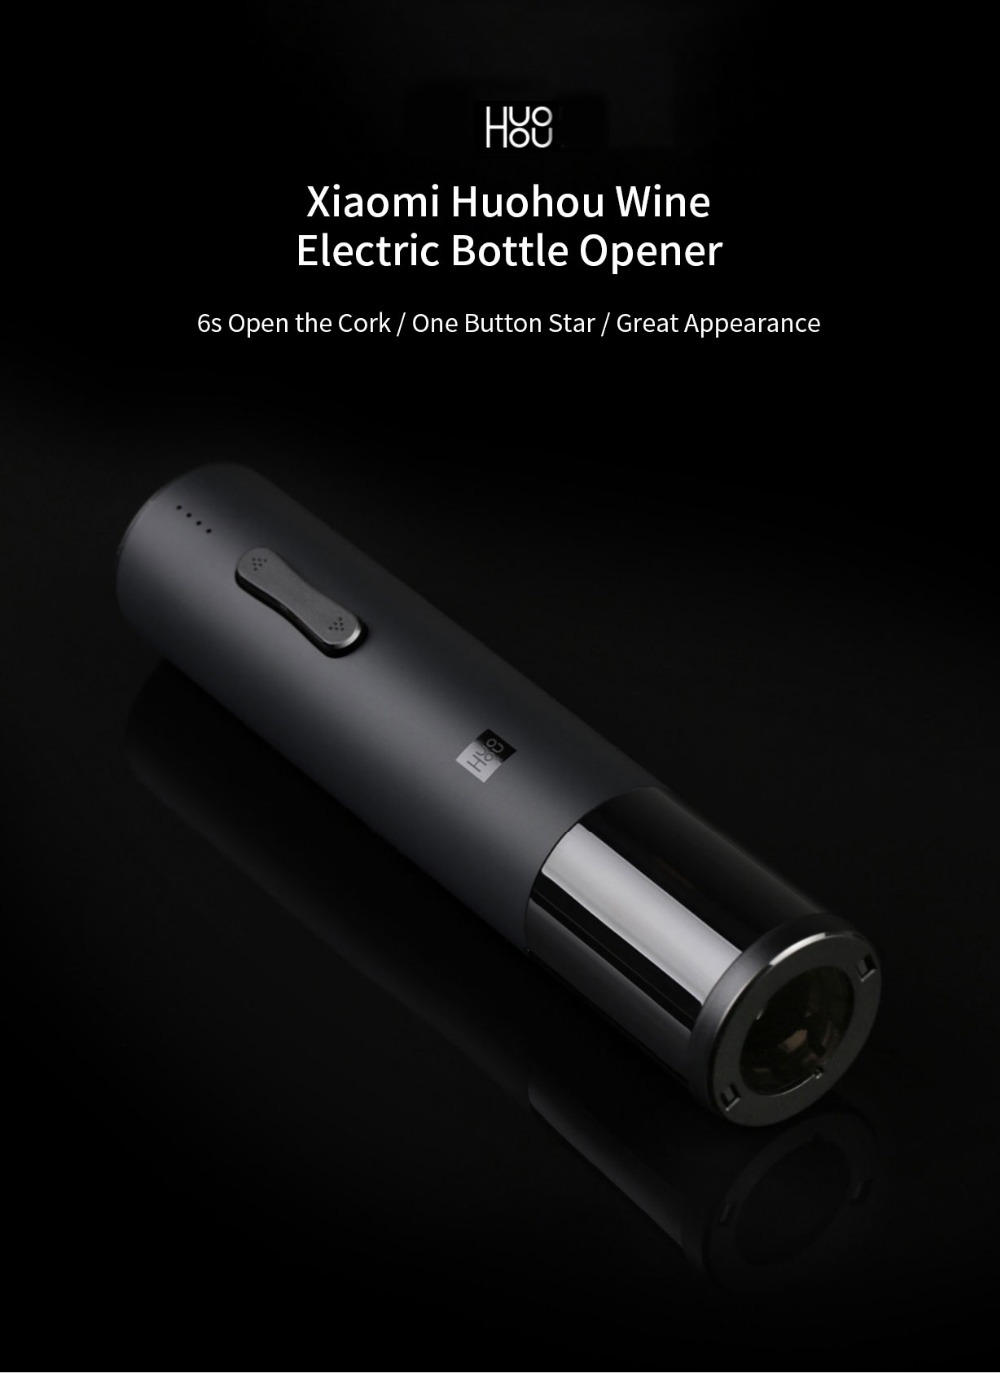 Xiaomi Huohou Automatic Red Wine BottleWine Stopper Electric Corkscrew Foil Cutter Cork Out Tool for Xiaomi Smart Home Kits H15 (8)